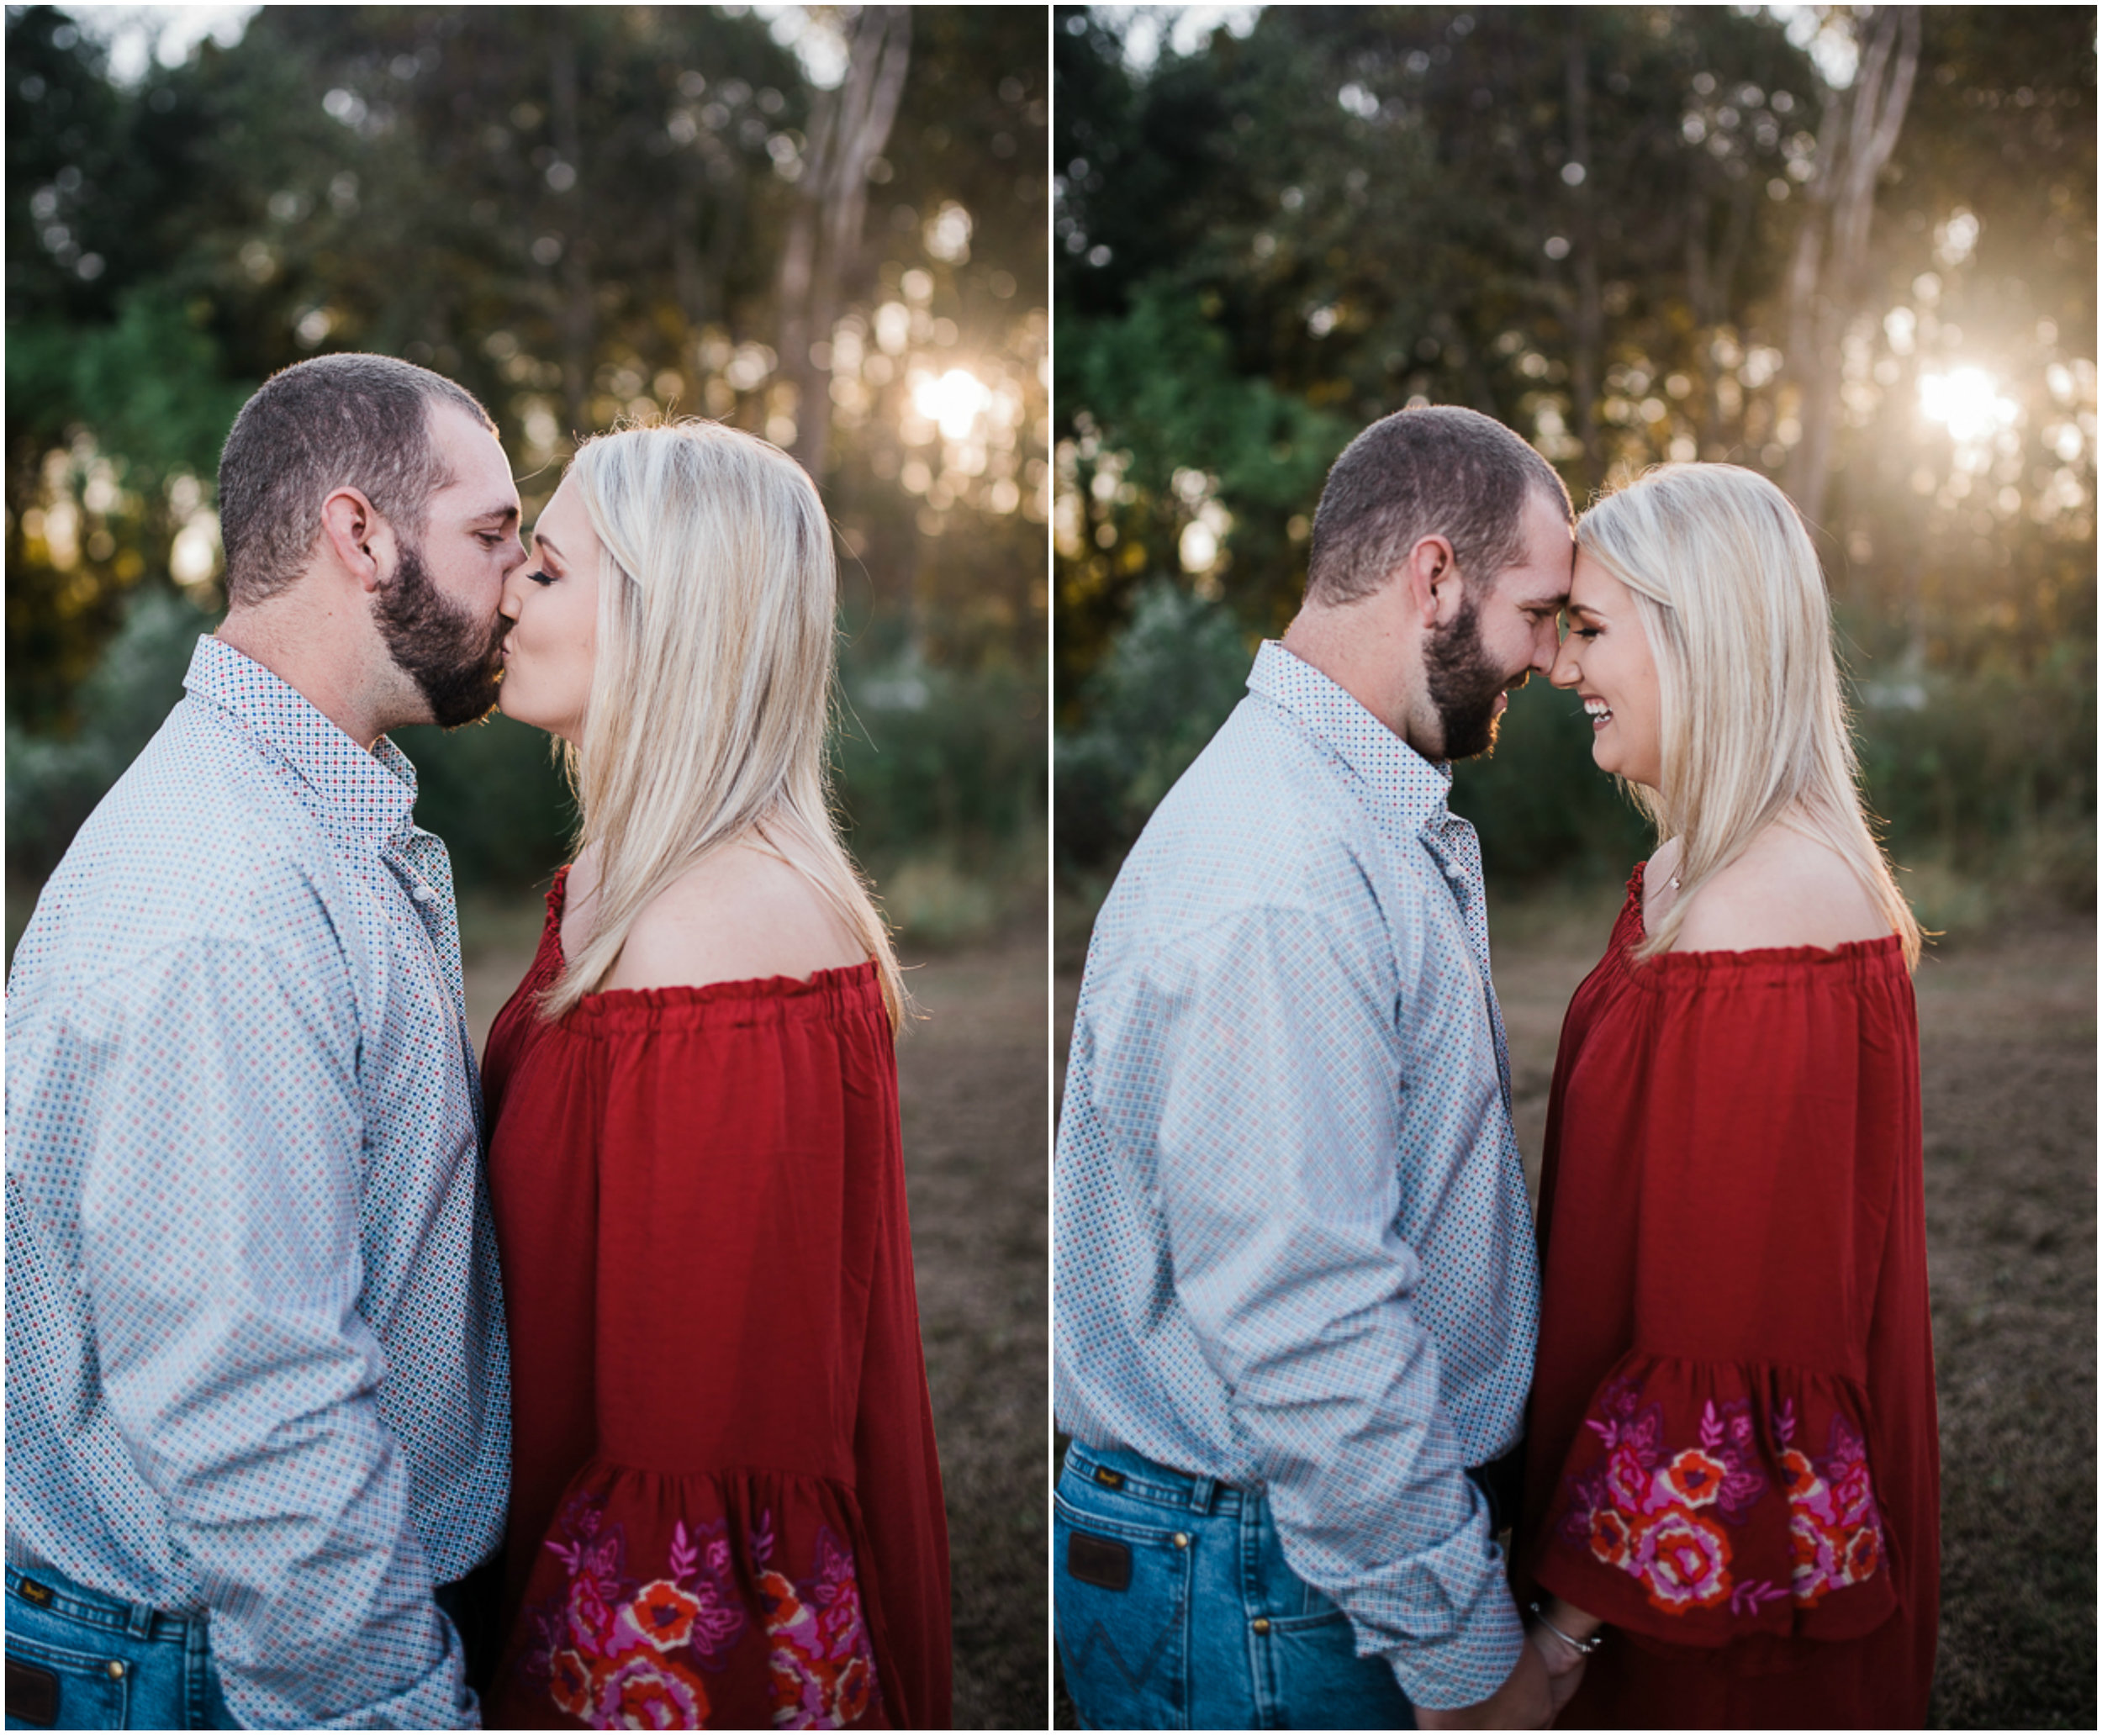 Fall Engagement Session, Red Dress, Rustic Engagement Session, Sunset Engagement Photos.jpg